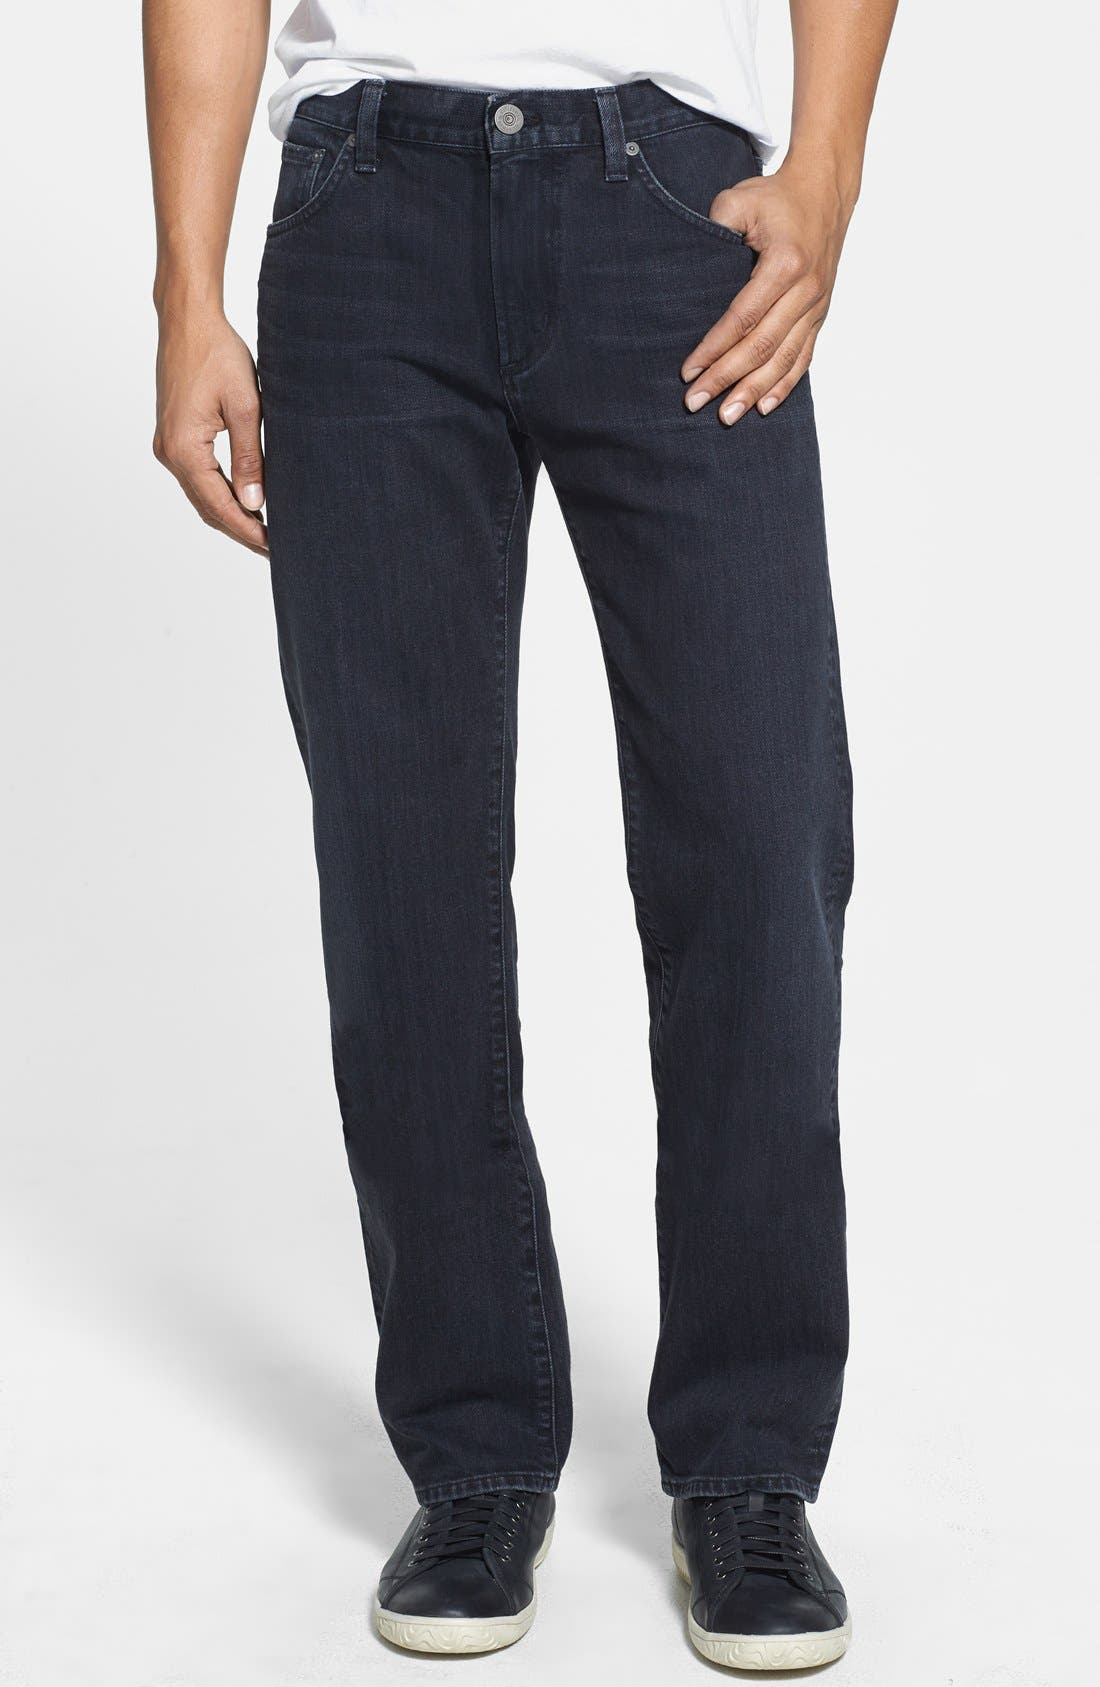 Alternate Image 1 Selected - Citizens of Humanity 'Sid' Straight Leg Jeans (Jackson)